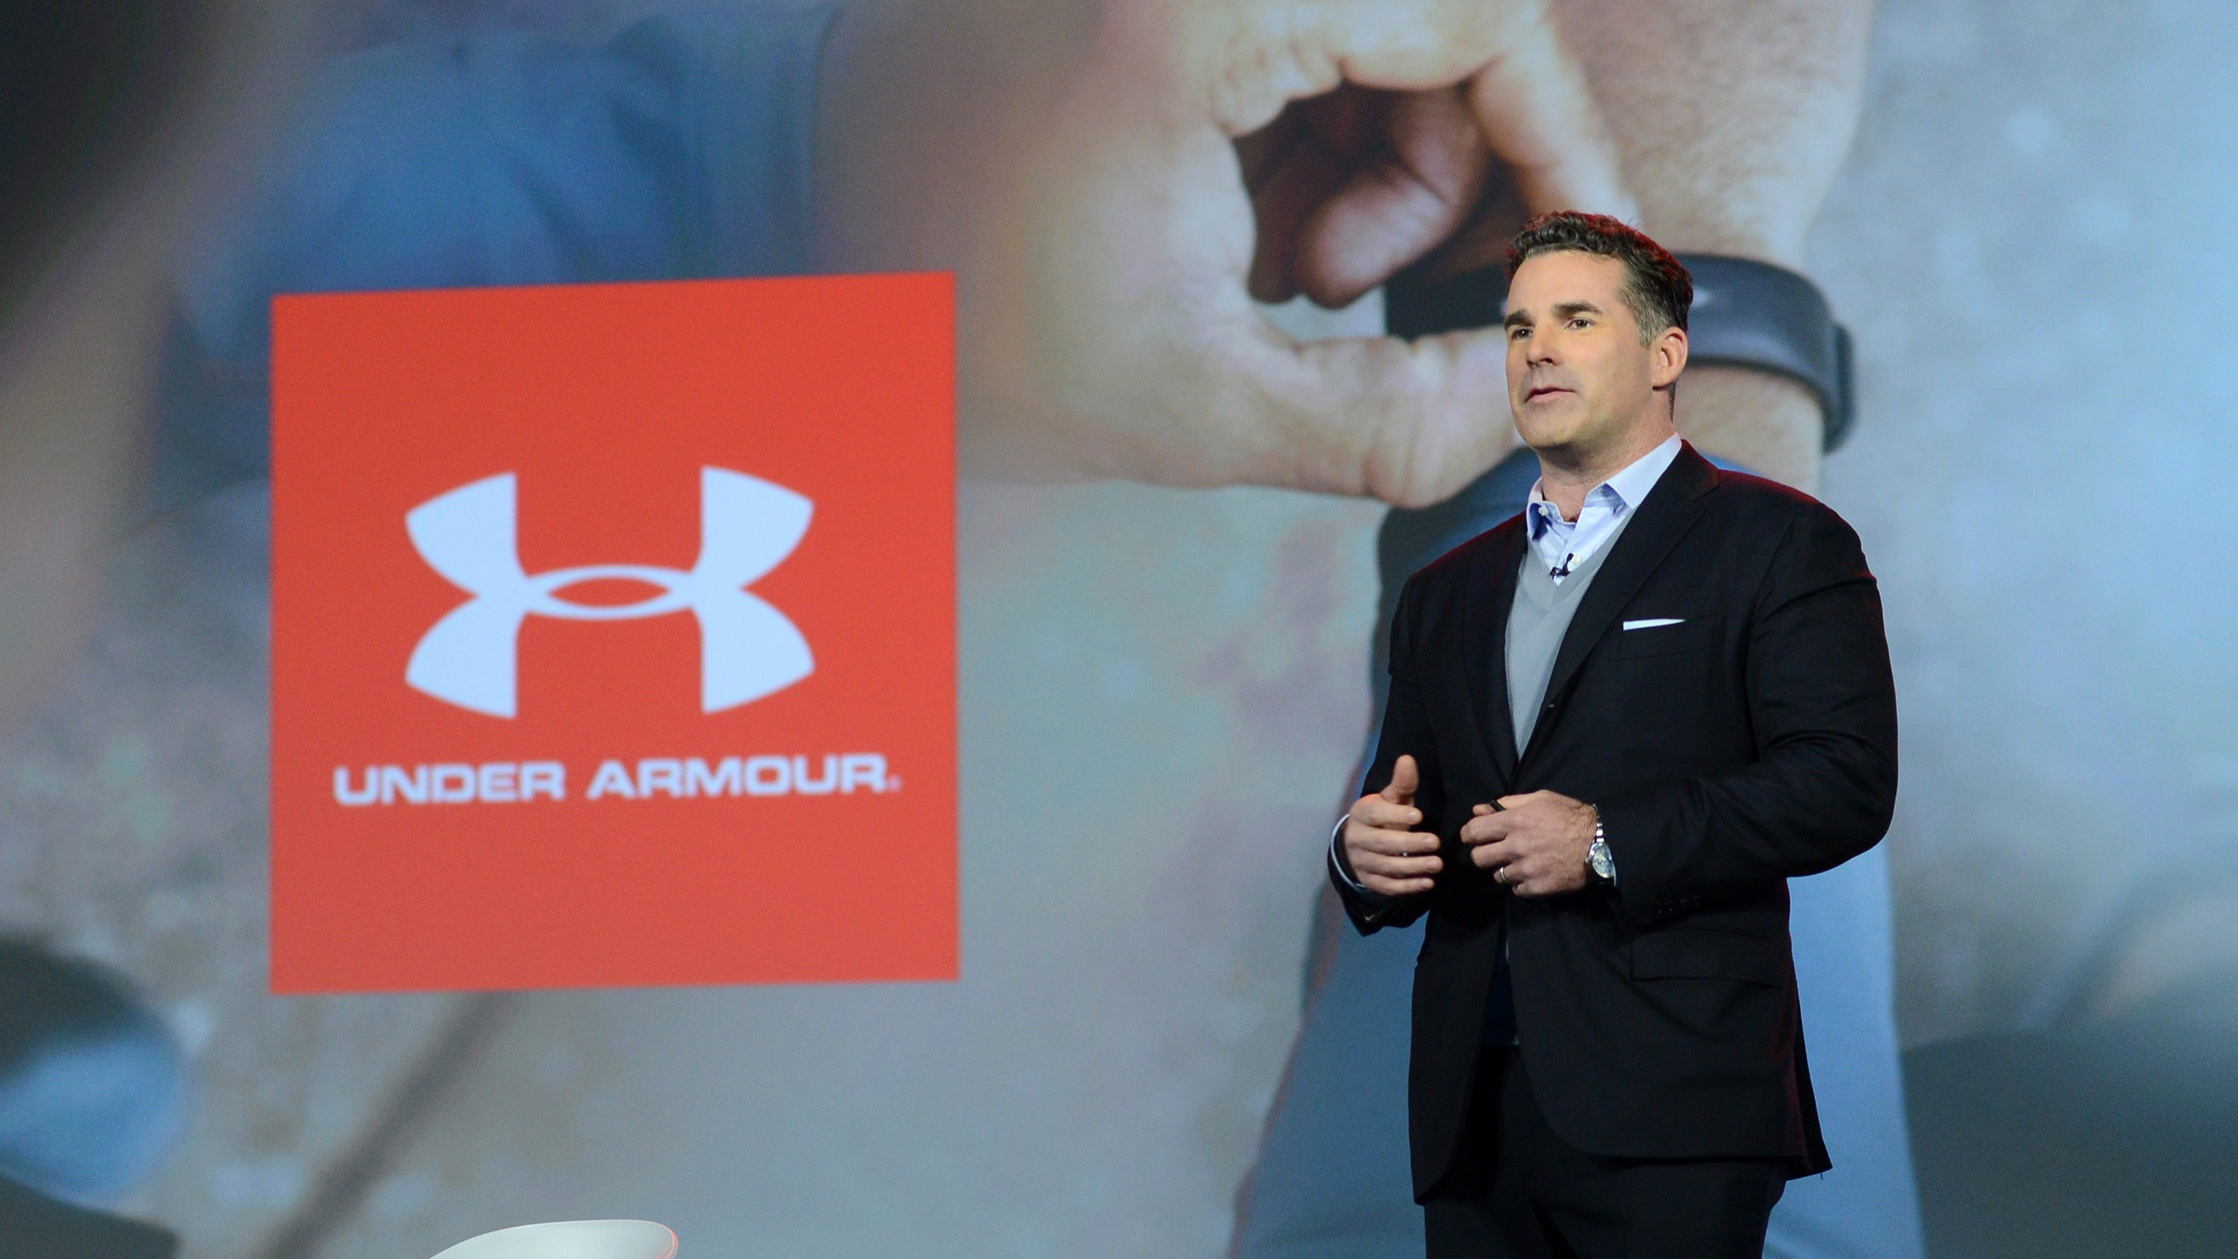 """In this photo taken by Feature Photo Service for IBM: At CES, IBM Chairman and CEO Ginni Rometty, and Kevin Plank, Founder and CEO, Under Armour, announced a new """"cognitive coaching"""" system, powered by Watson, that will transform personal health and fitness, Weds., January 6, 2016 in Las Vegas, Nev. The system will serve as a personal health consultant, fitness trainer and assistant by providing athletes with coaching around sleep, fitness, activity and nutrition. It will initially be available within UA Record (TM) available now on the App Store. (Alan Rosenberg/Feature Photo Service for IBM)"""